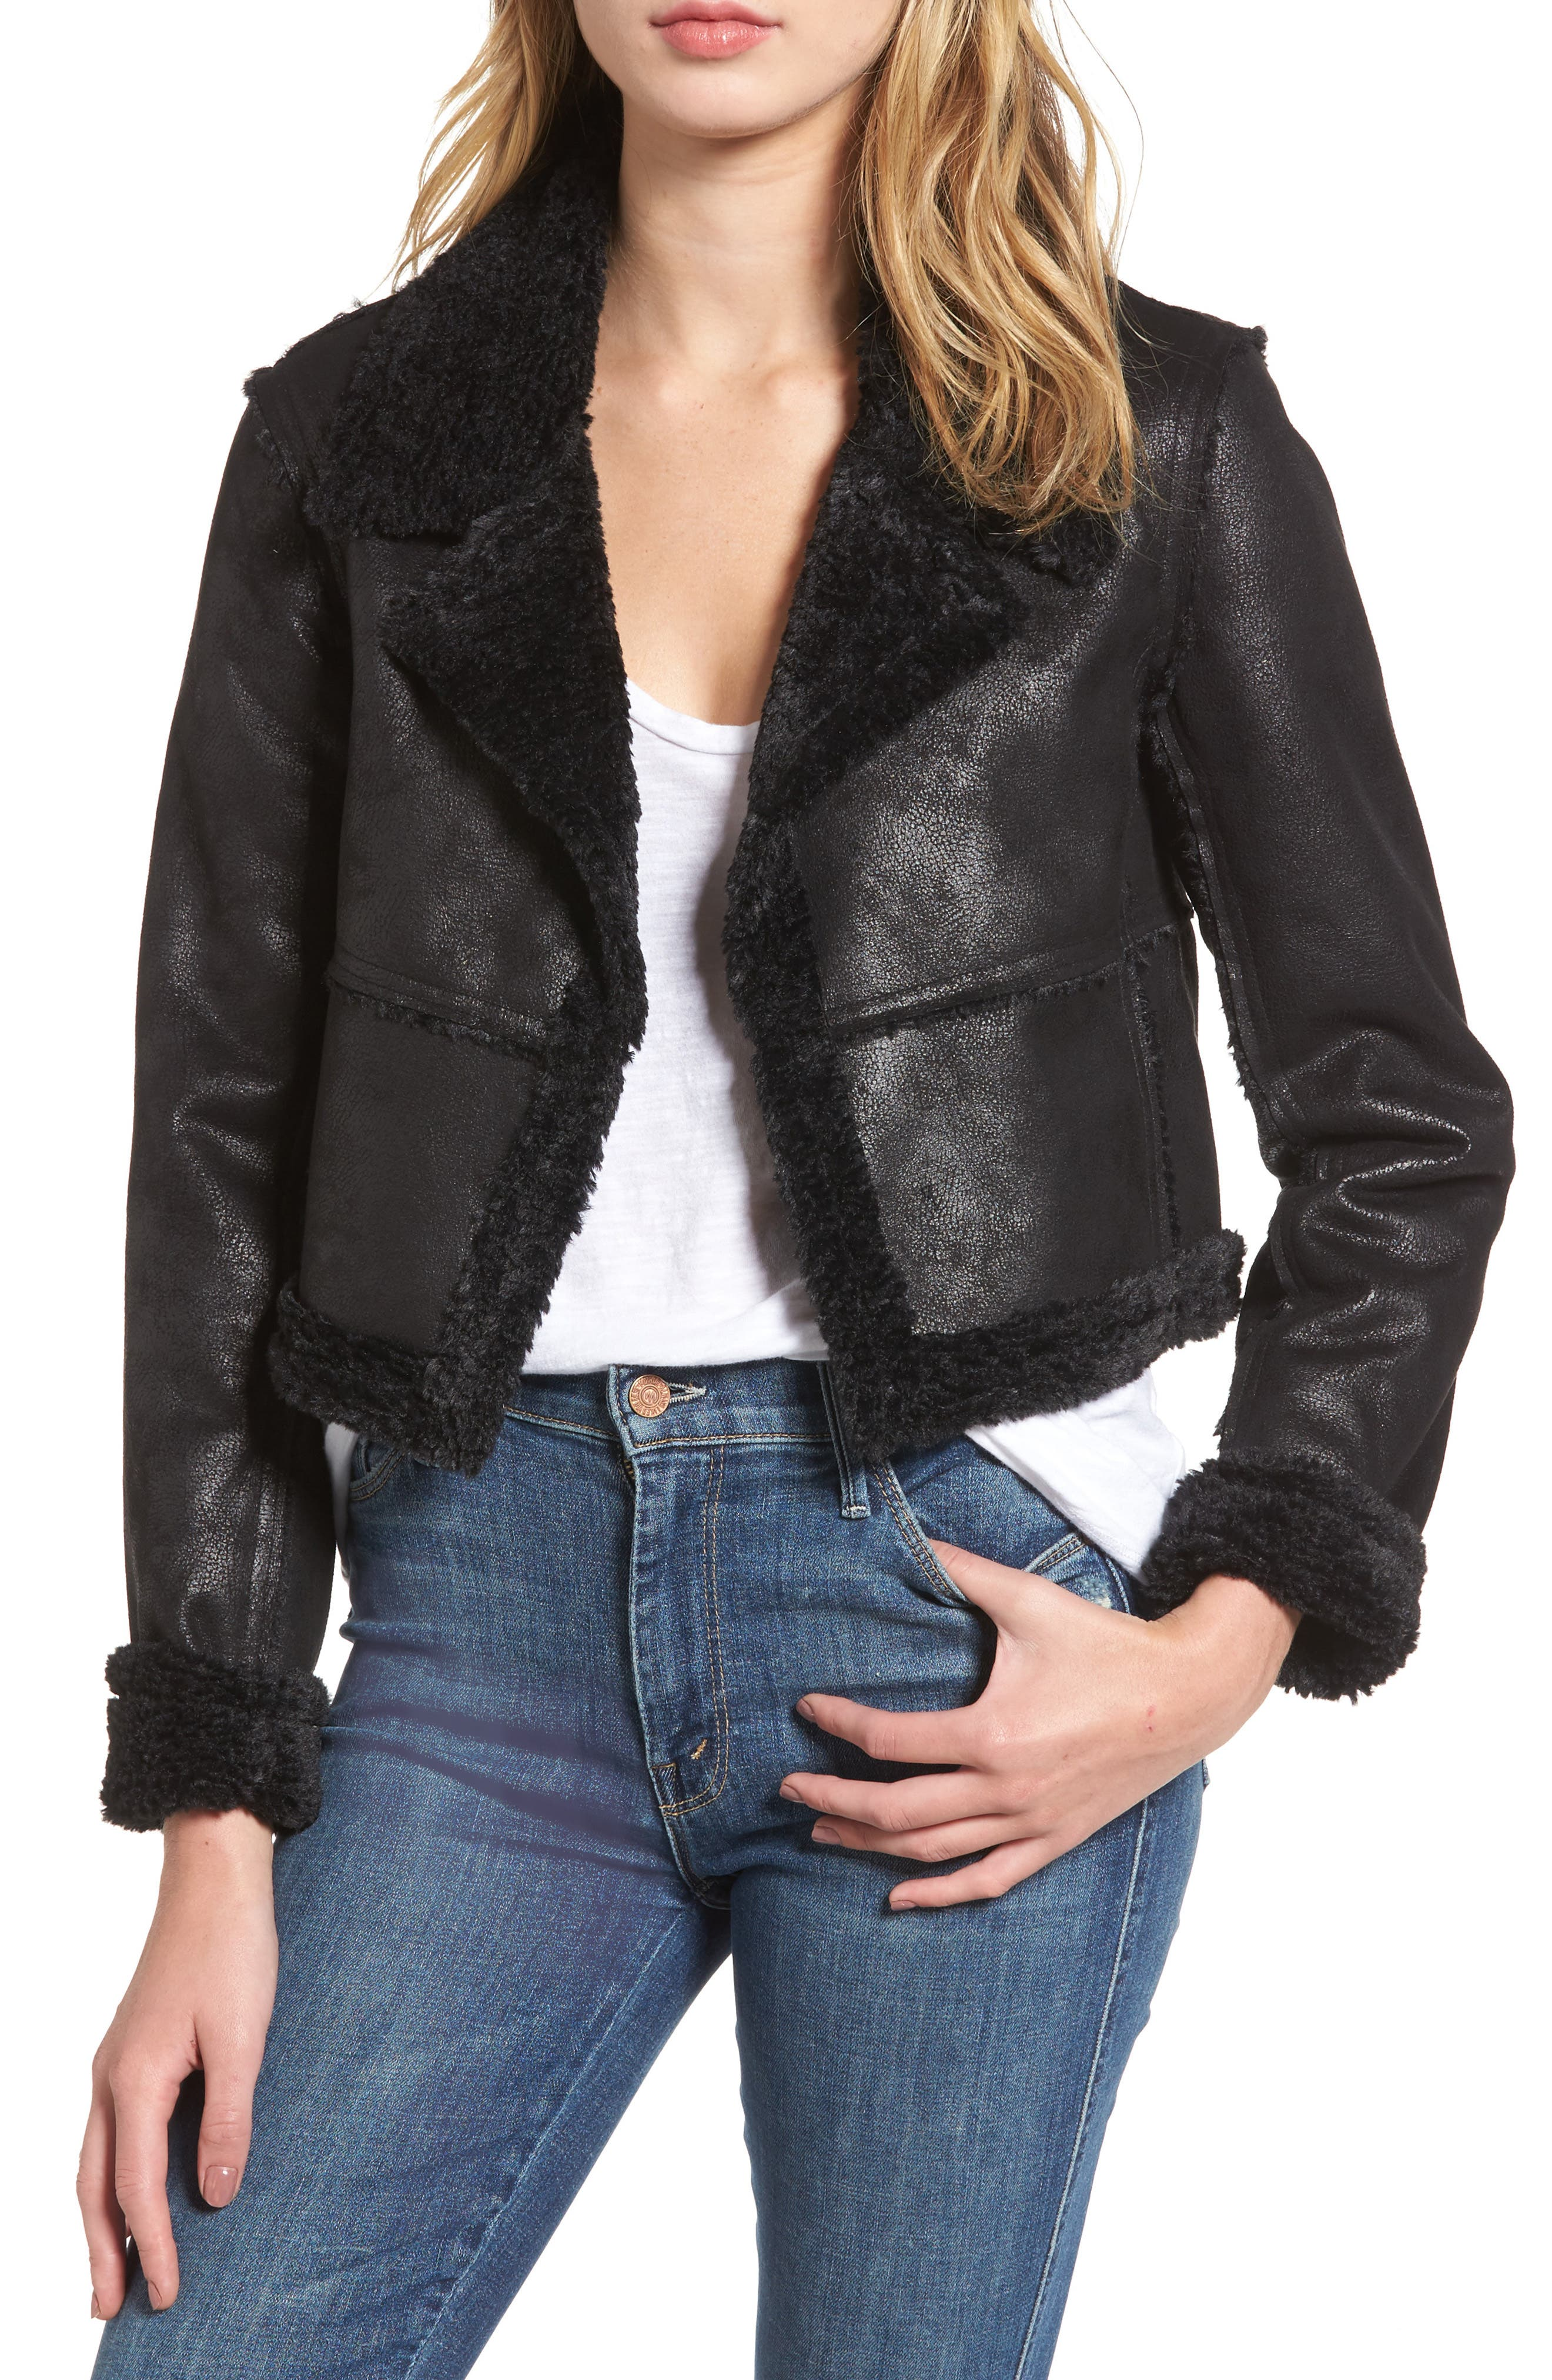 Alternate Image 1 Selected - Ella Moss Claudine Faux Shearling Moto Jacket